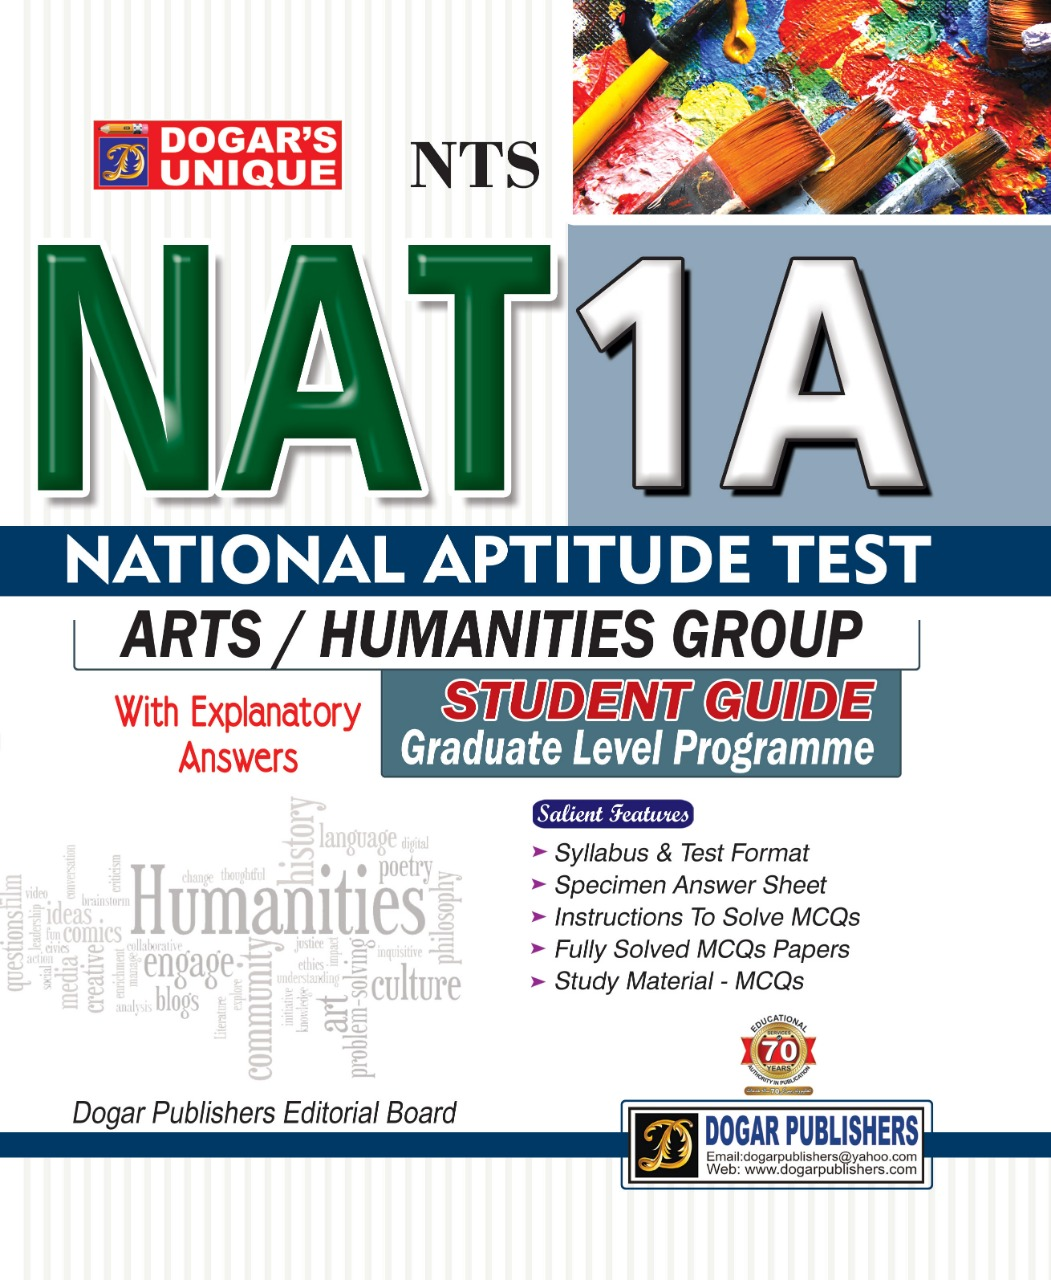 NTS (National Testing service) NAT 1A (National Aptitude Test) Arts/ Humanities Group